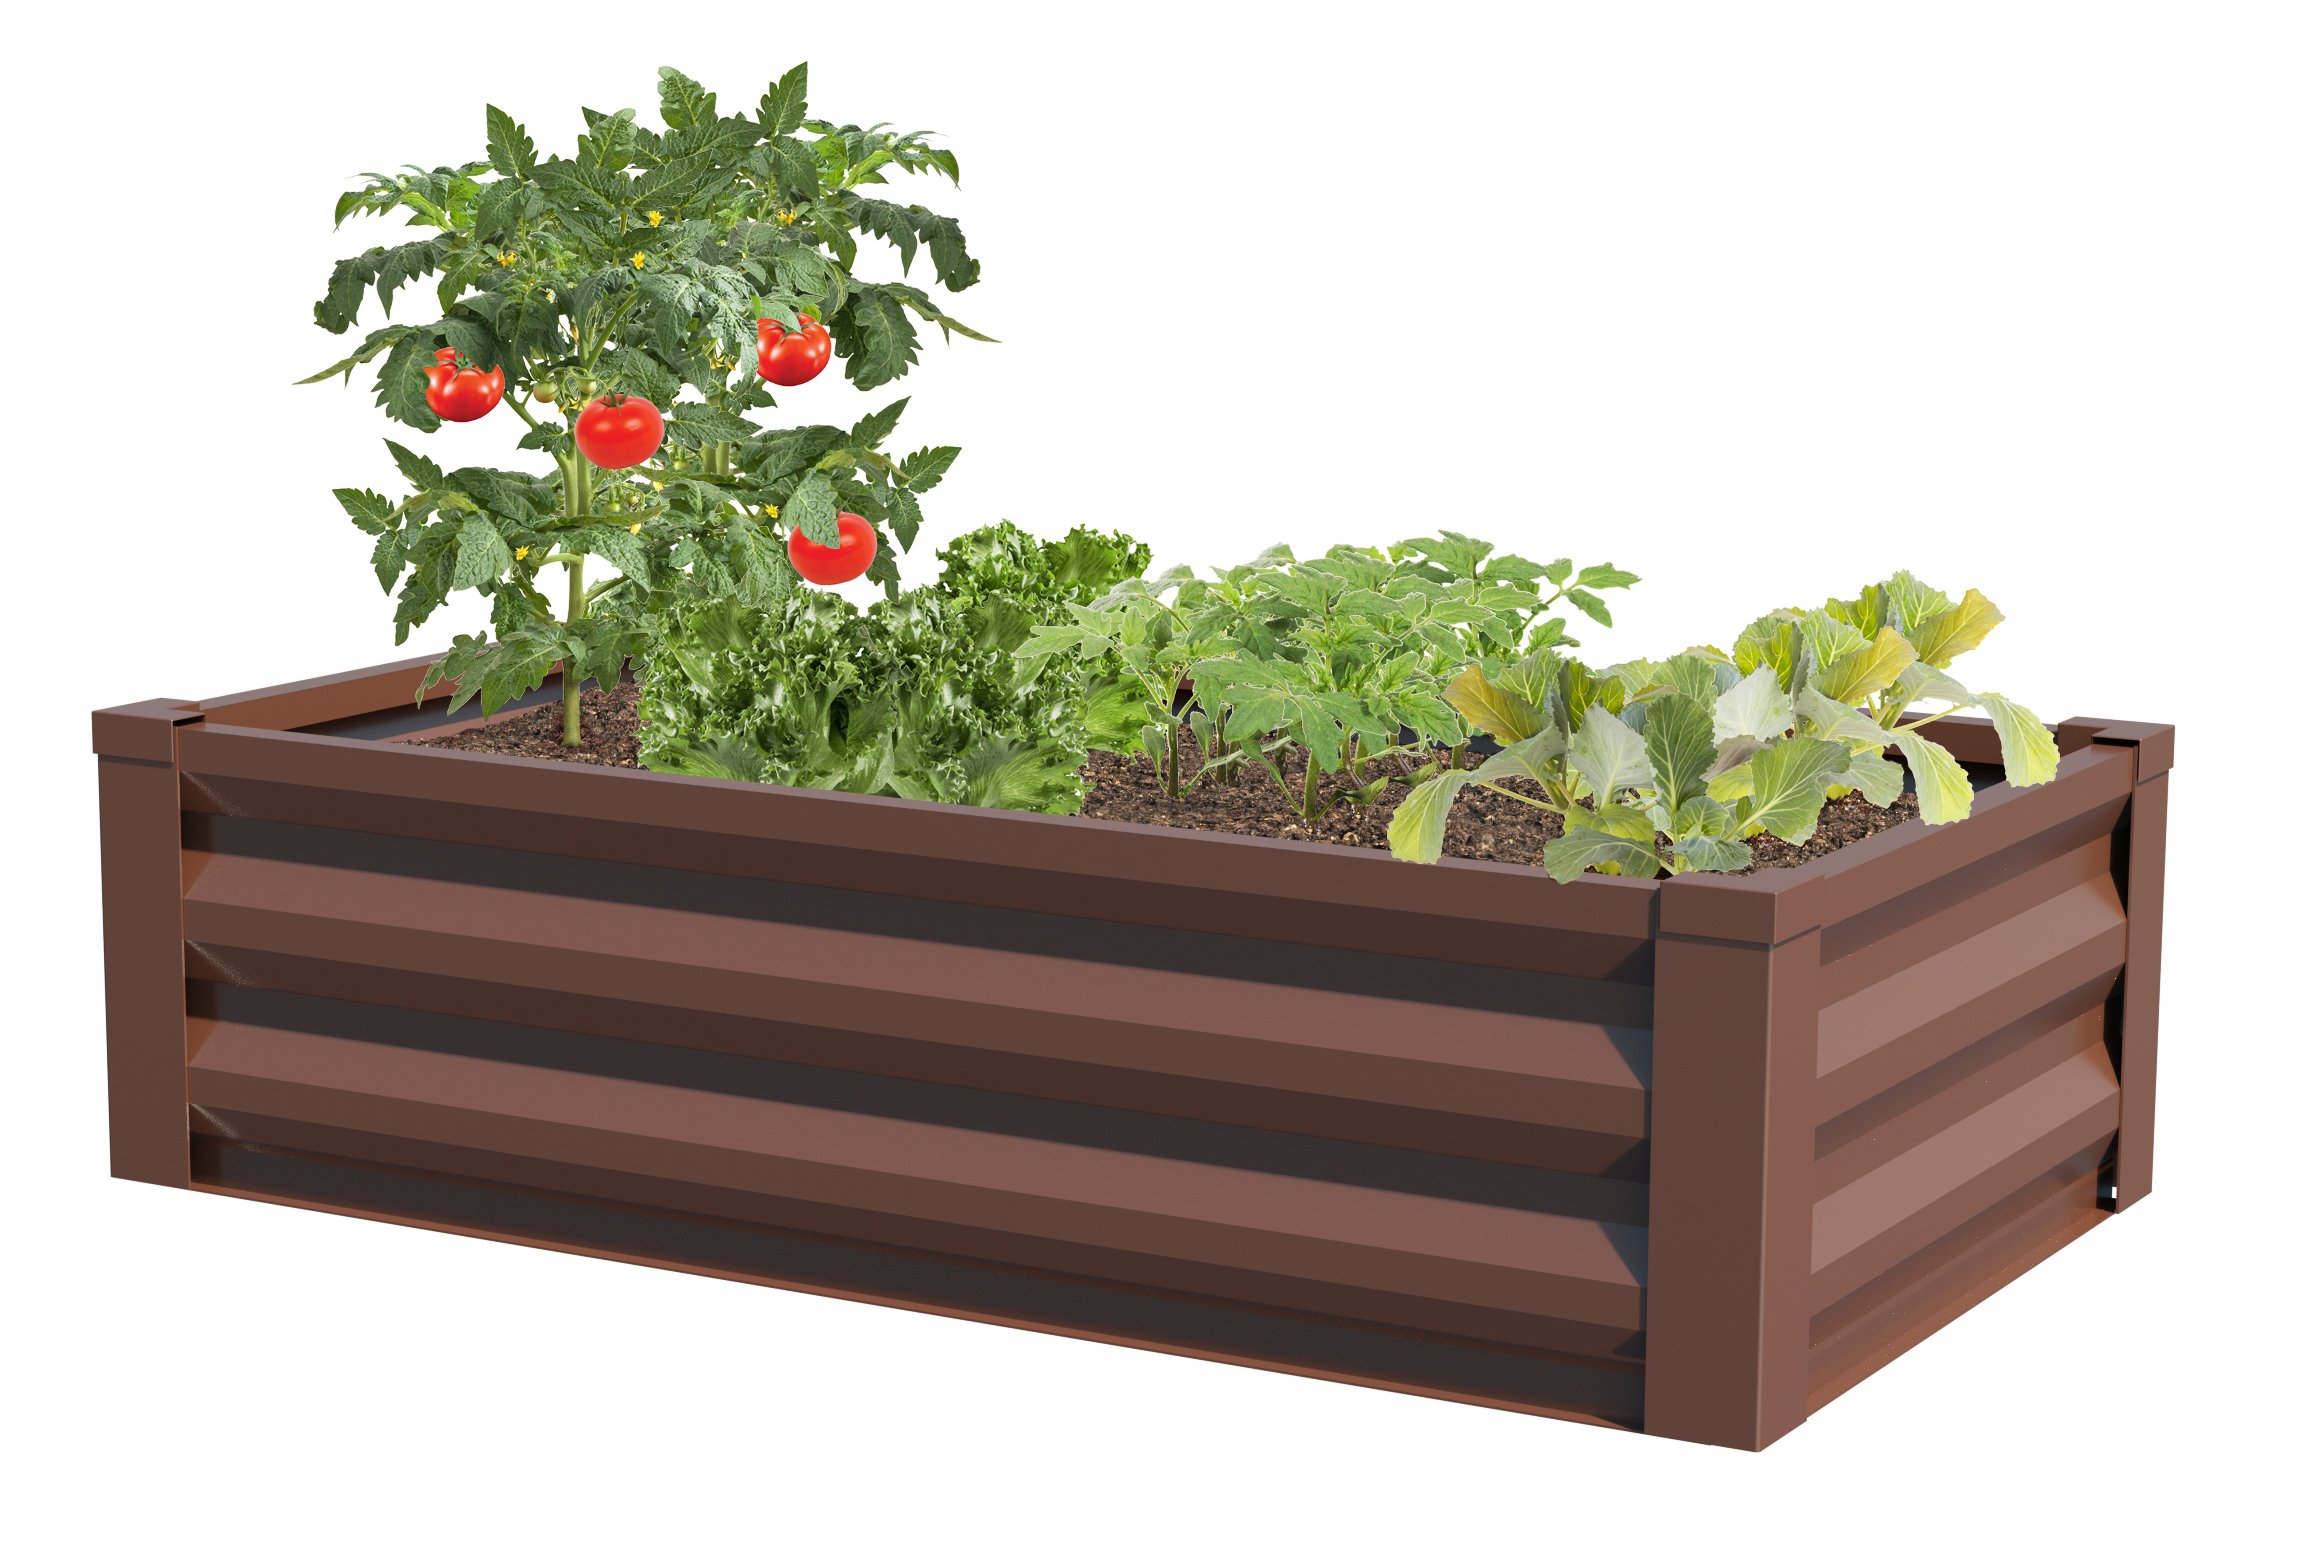 Metal Frame Raised Garden Bed Kit Multi Sizes Elevated Planter Box For Growing Herbs Vegetables Greens Strawberries Flowers Above Ground Galvanized Flower Bed Kit 4 X 4 Ft Or 6 X 2